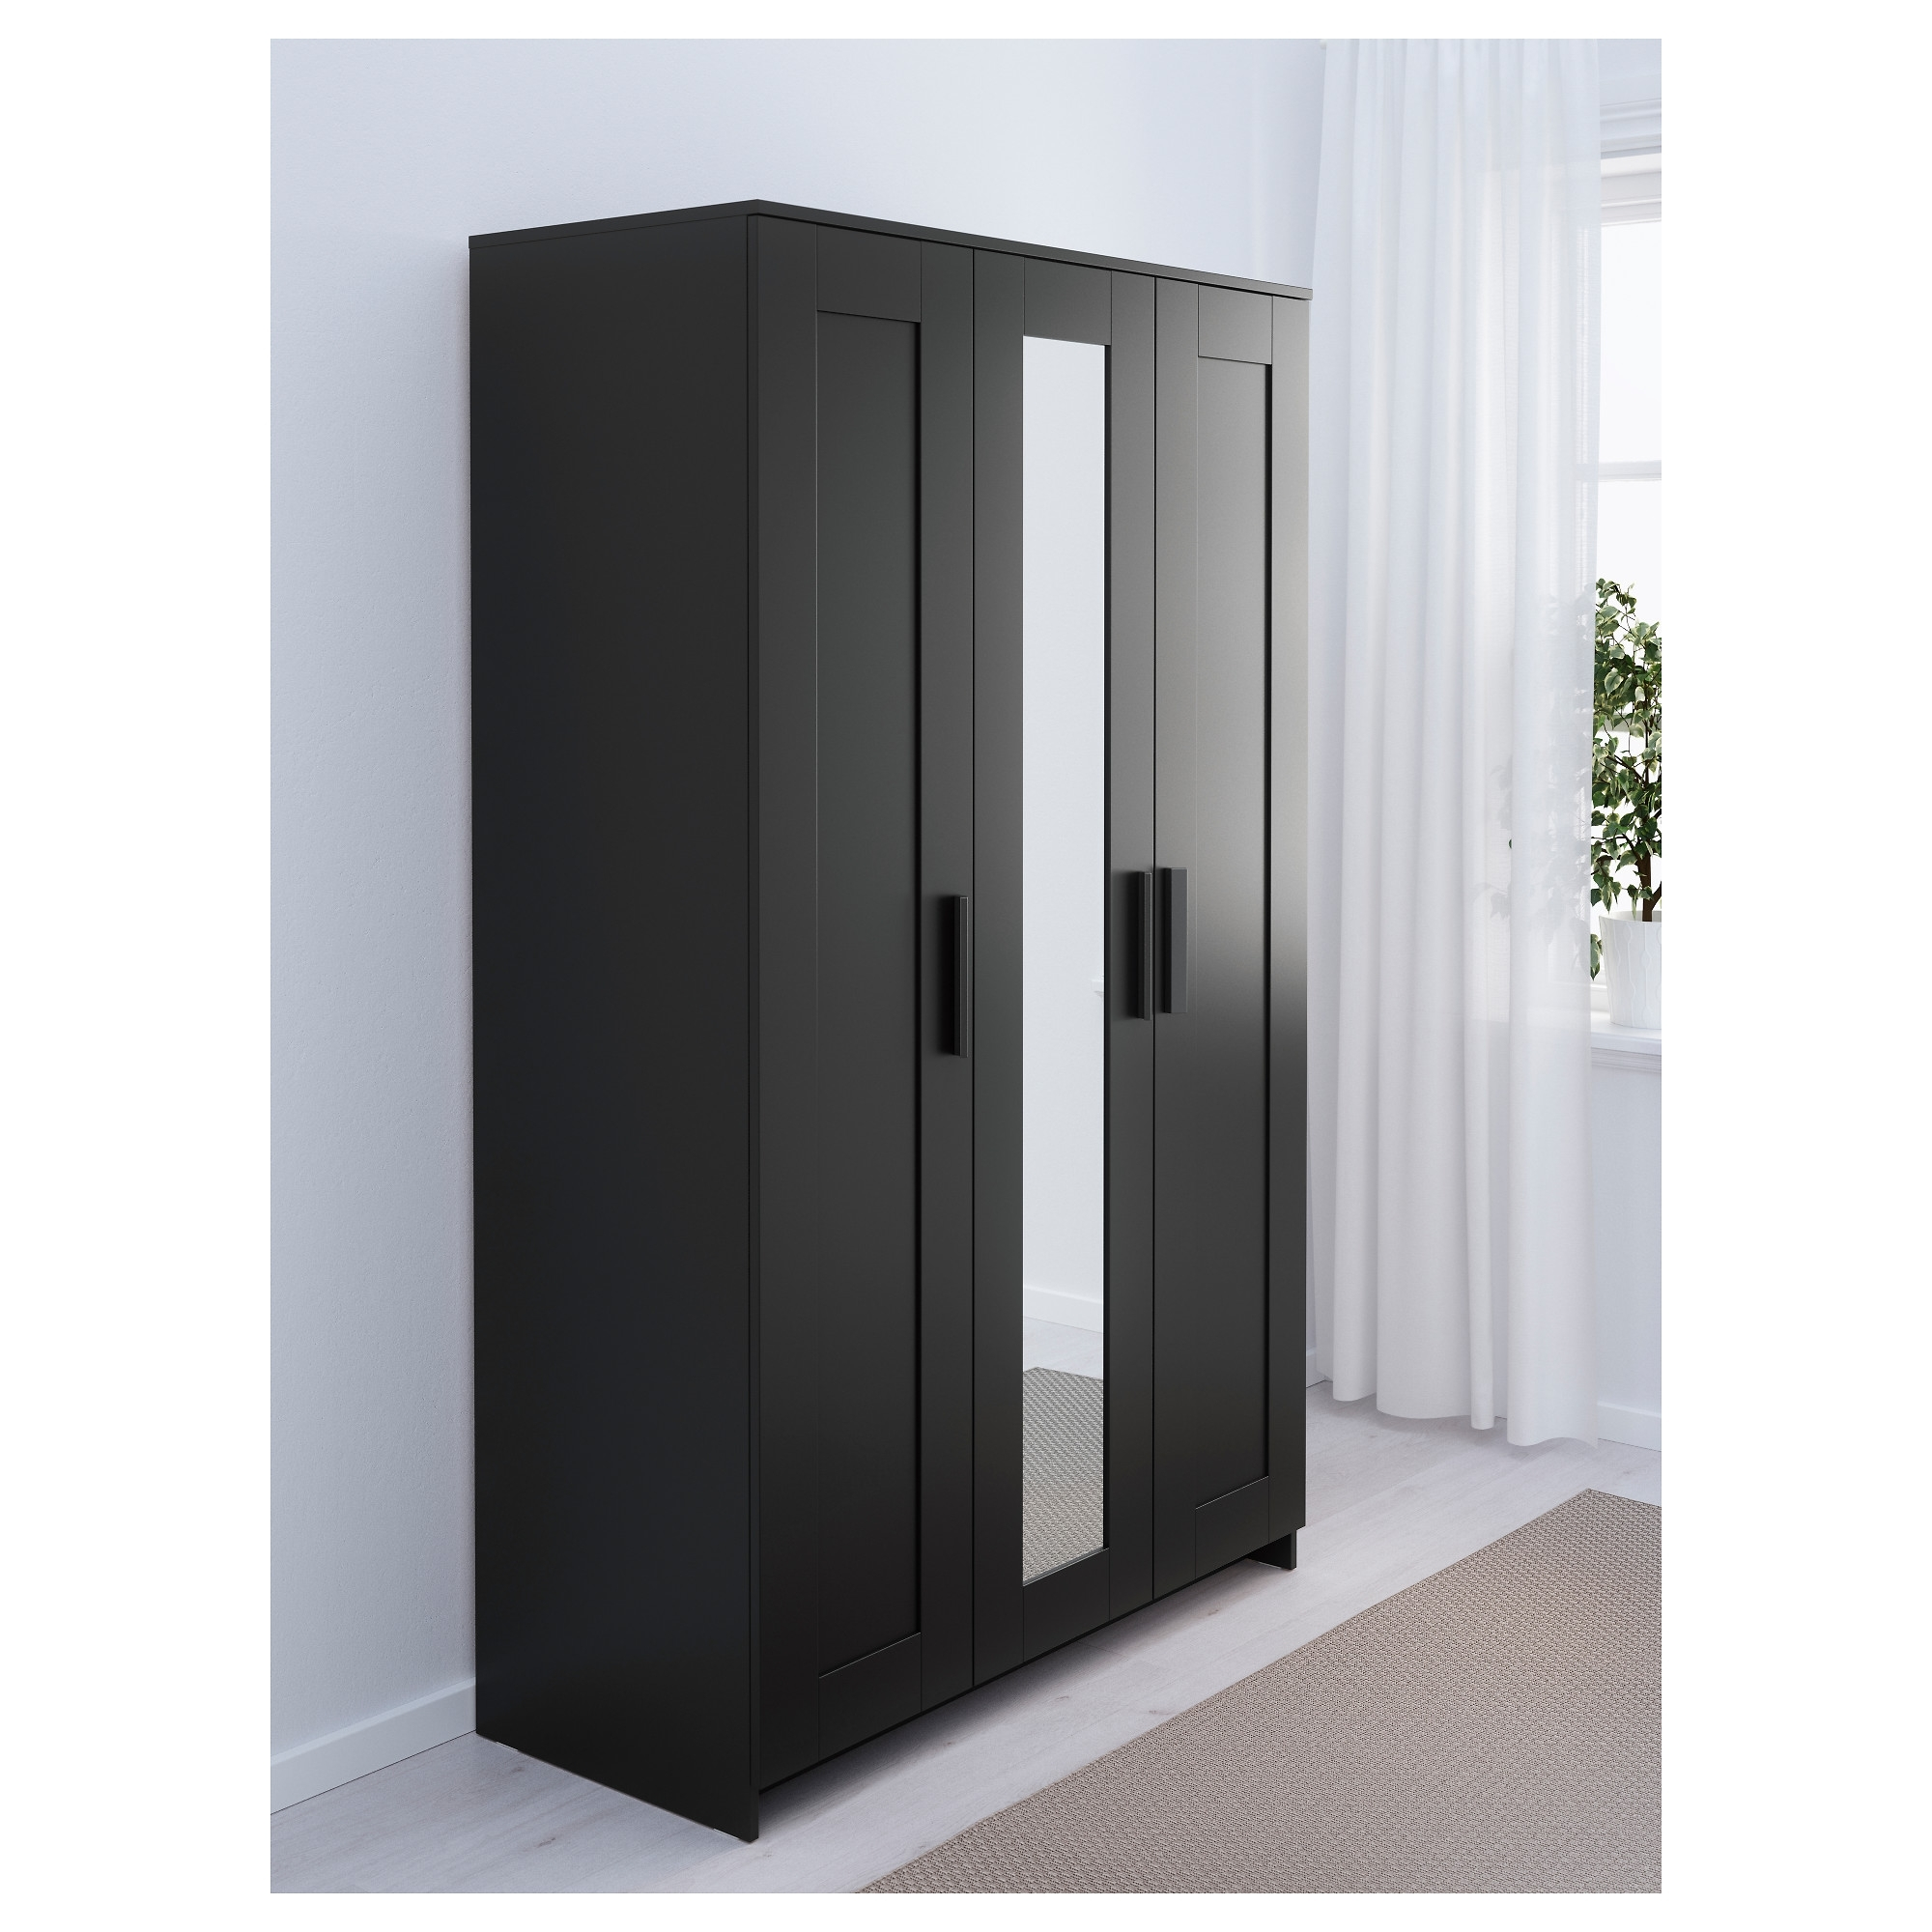 Brimnes Wardrobe With 3 Doors – White – Ikea Intended For Most Recent White 3 Door Wardrobes With Mirror (View 9 of 15)